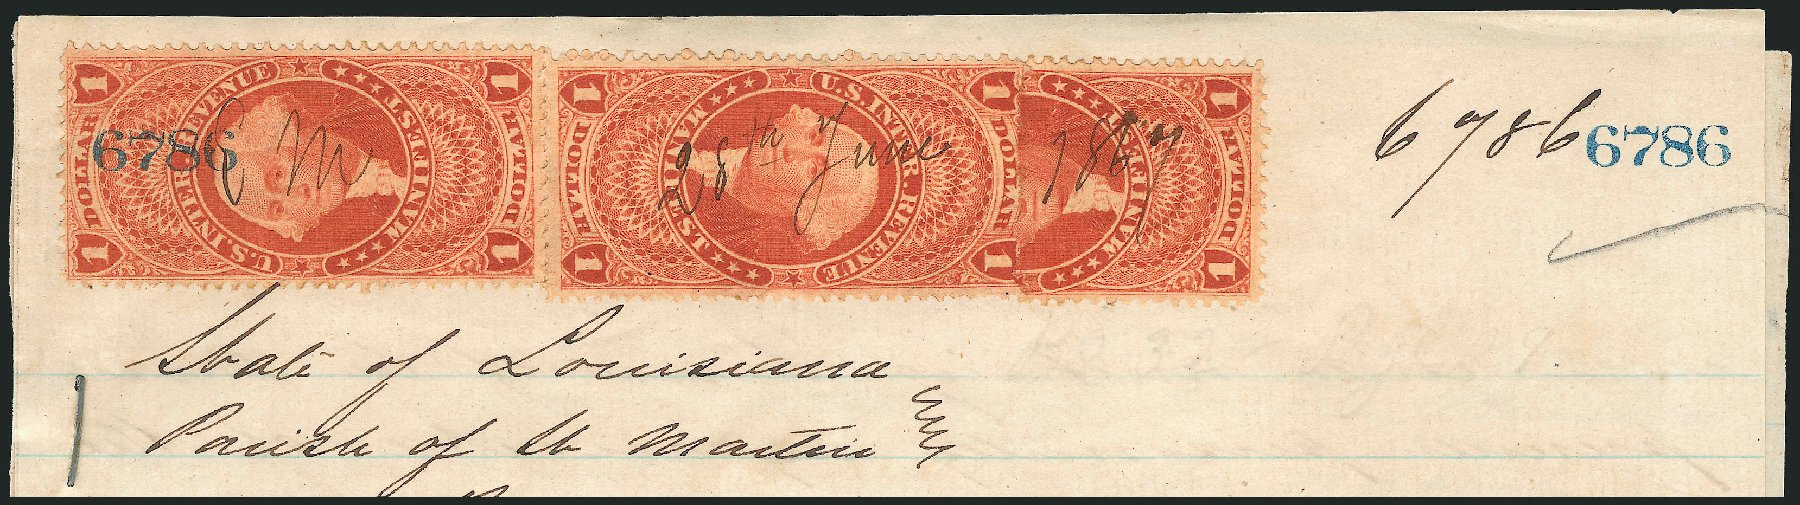 Price of US Stamps Scott R72 - US$1.00 1862 Revenue Manifest. Robert Siegel Auction Galleries, Mar 2012, Sale 1019, Lot 1019